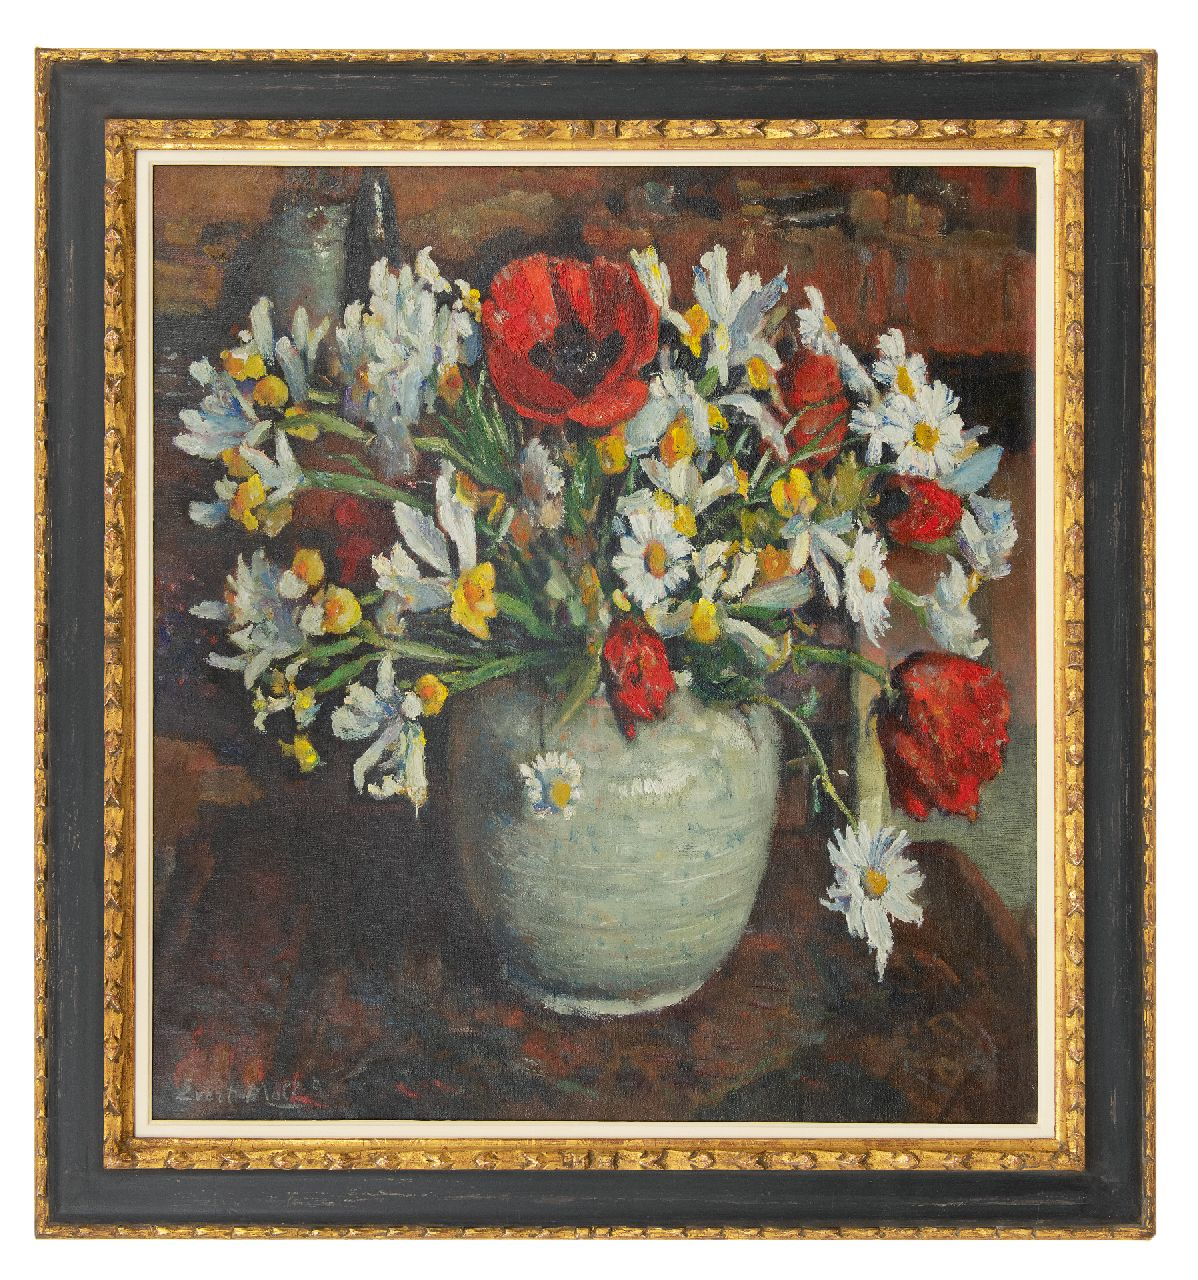 Moll E.  | Evert Moll | Paintings offered for sale | Poppies and daisies in a white vase, oil on canvas 76.0 x 70.2 cm, signed l.l.